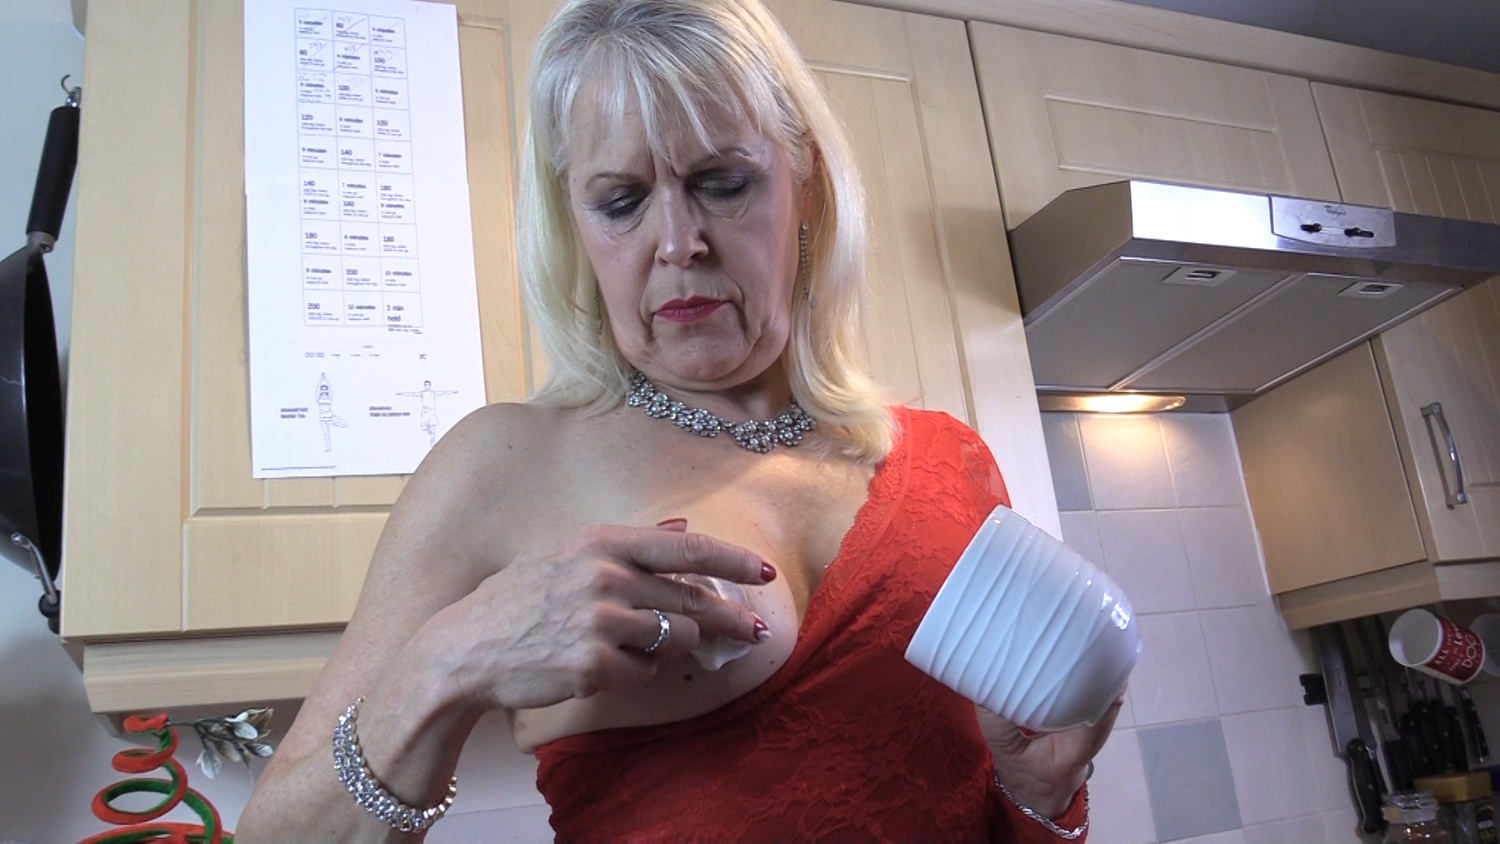 Lady sextasy loves greek yoghurt - 3 6